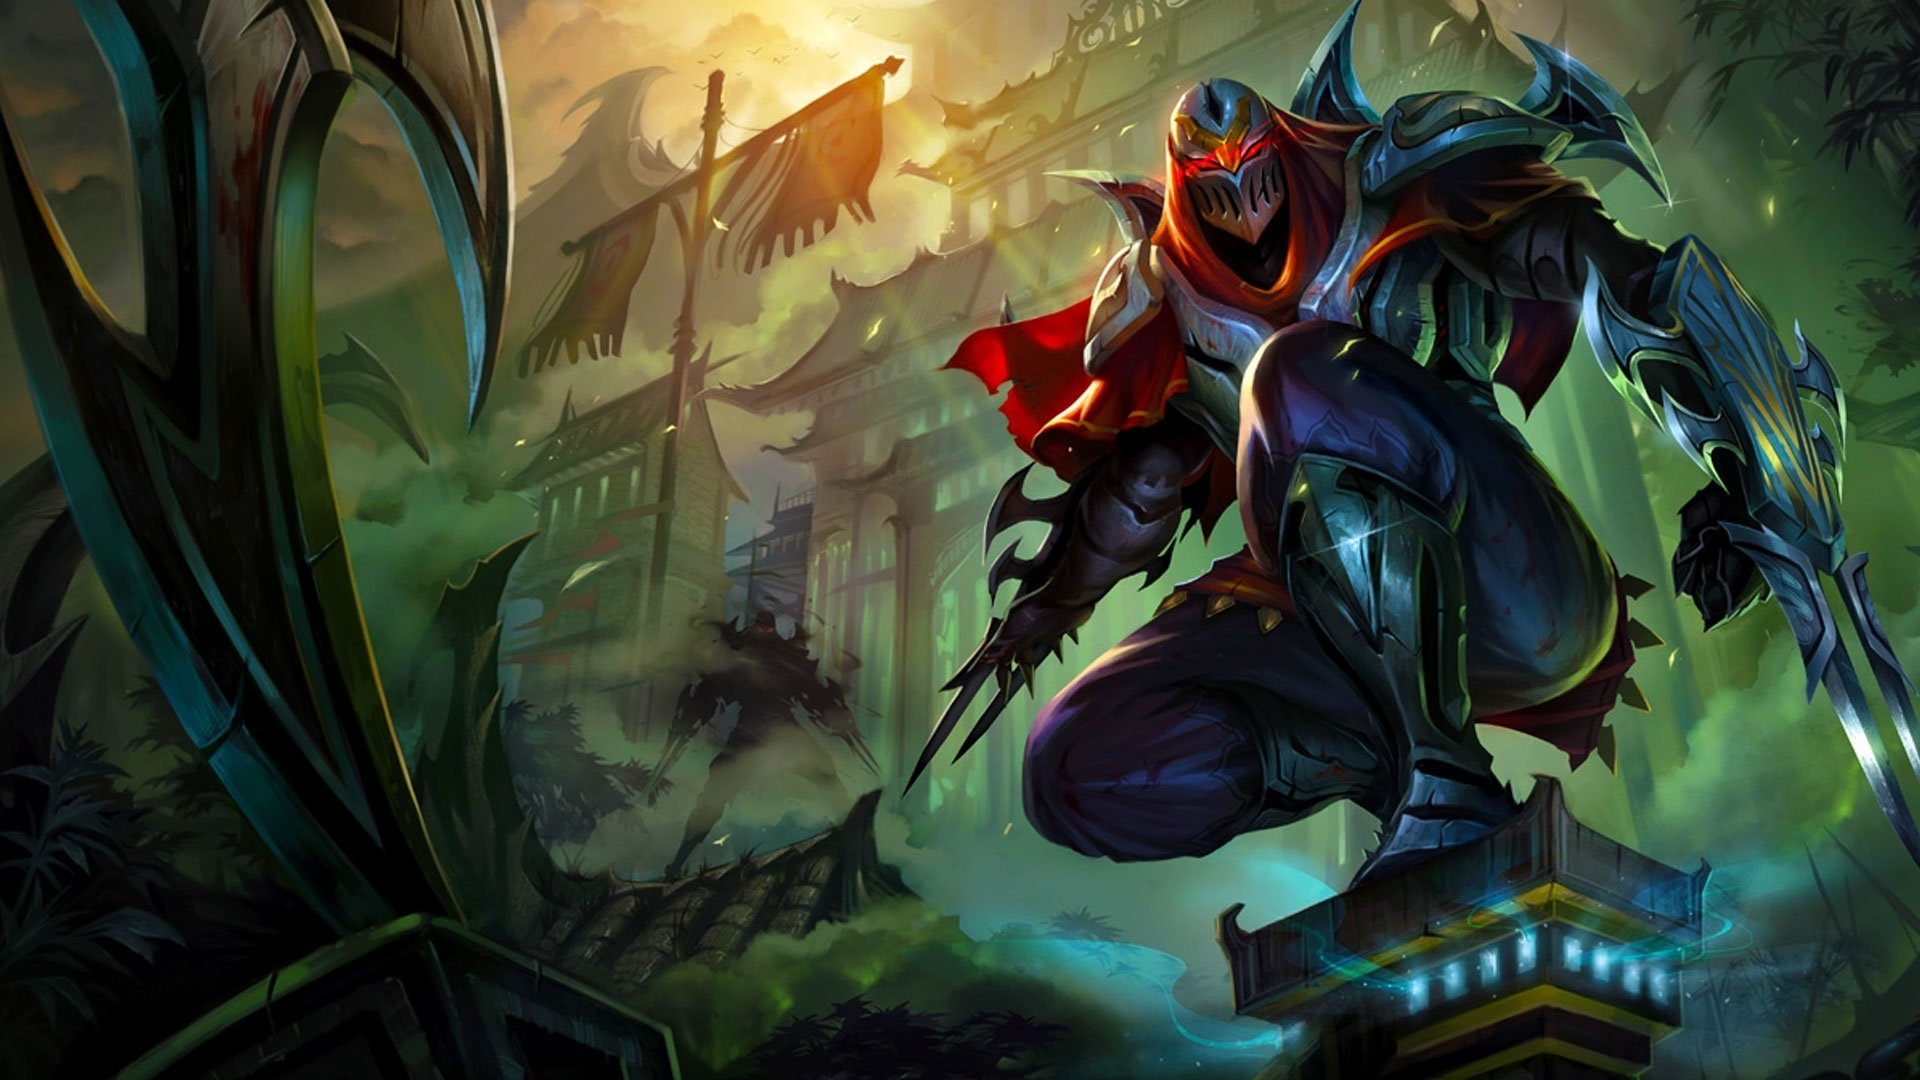 50 zed (league of legends) hd wallpapers | background images